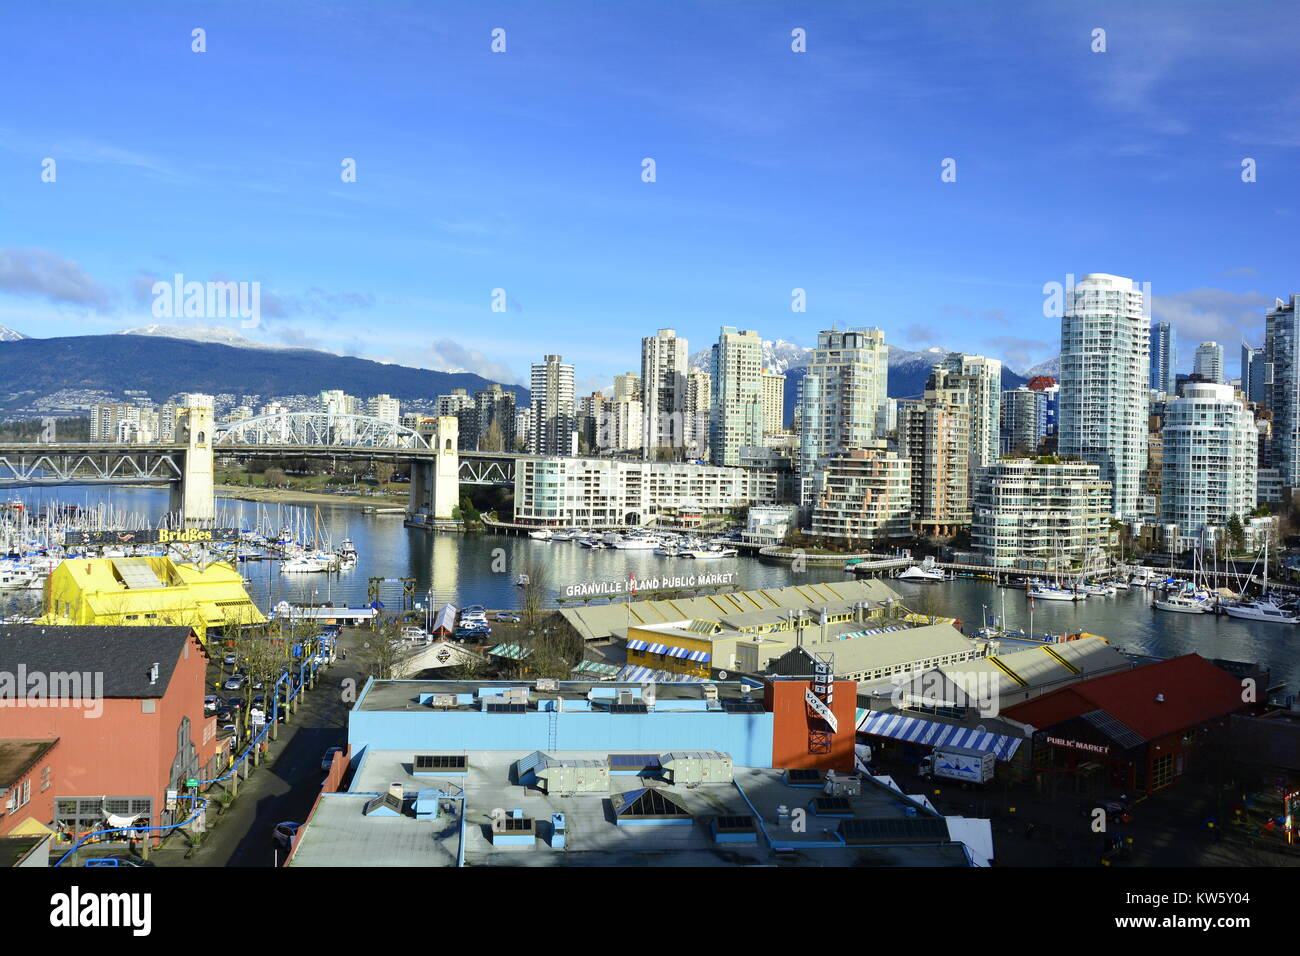 The high rises skyline of False Creek in Vancouver Canada,and Granville Island. Stock Photo